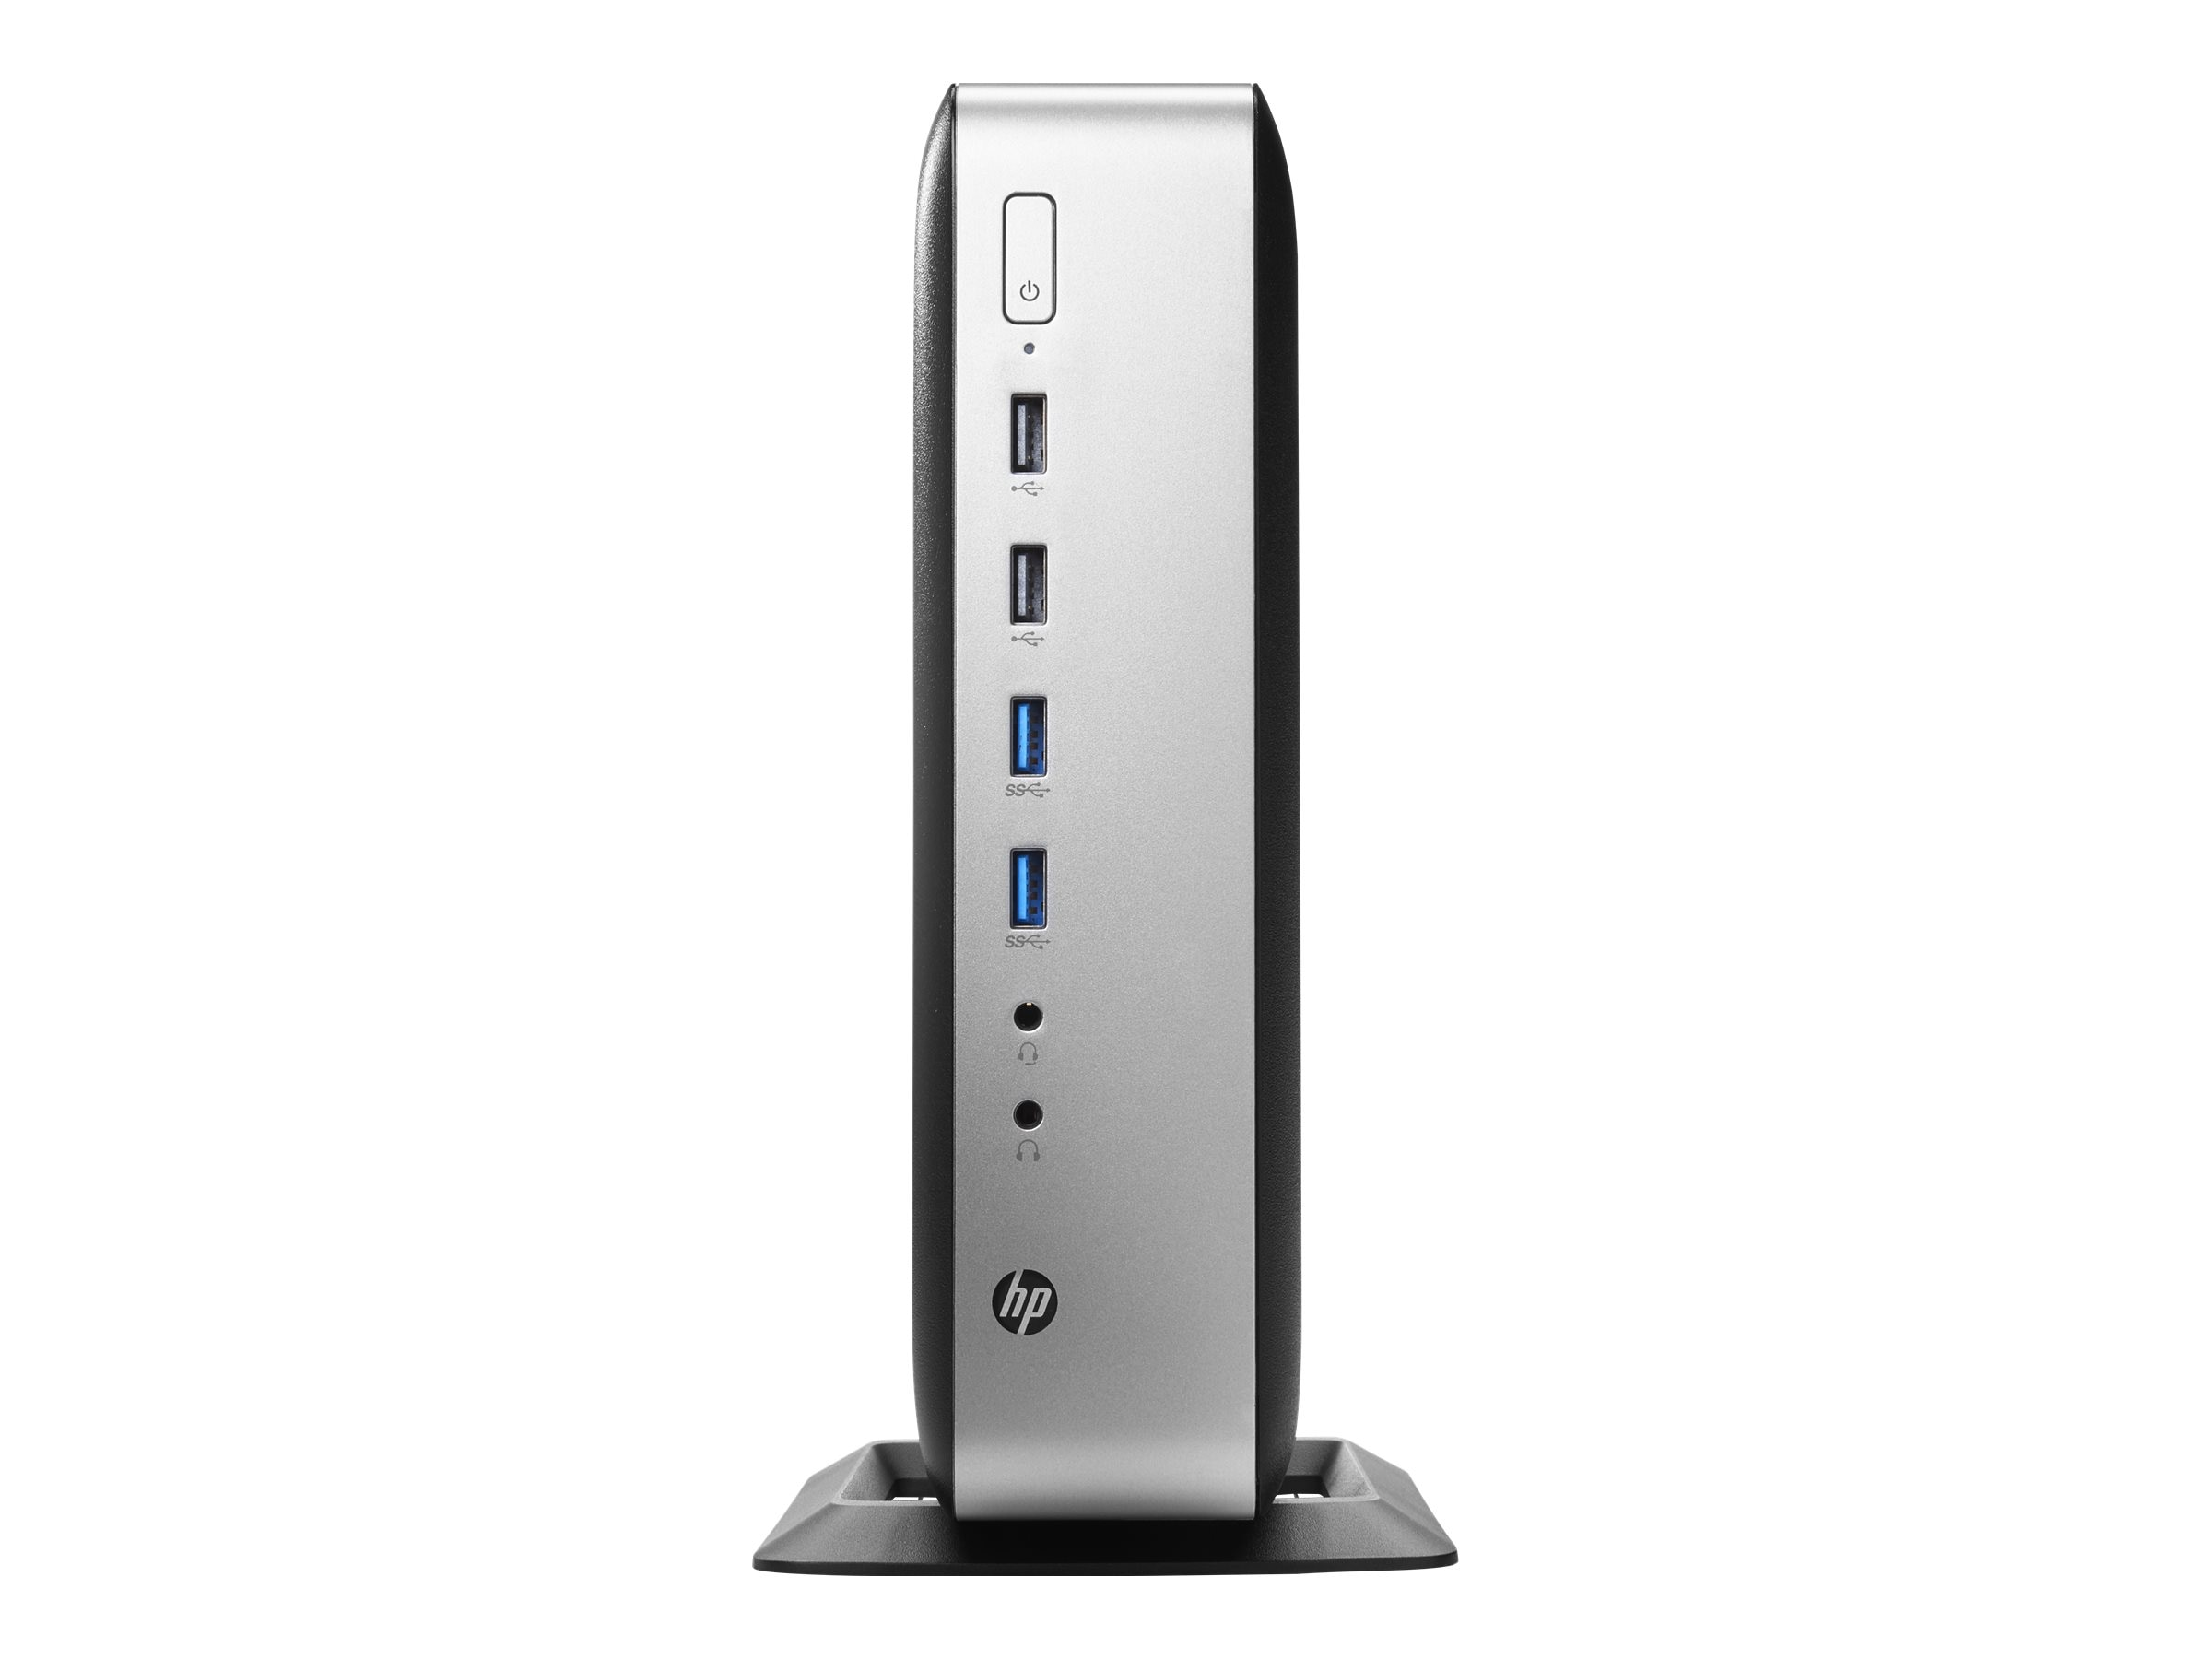 HP t730 Thin Client AMD QC RX-427BB 2.7GHz 8GB 32GB Flash HD9000 GbE W10 IoT, P3S26AT#ABA